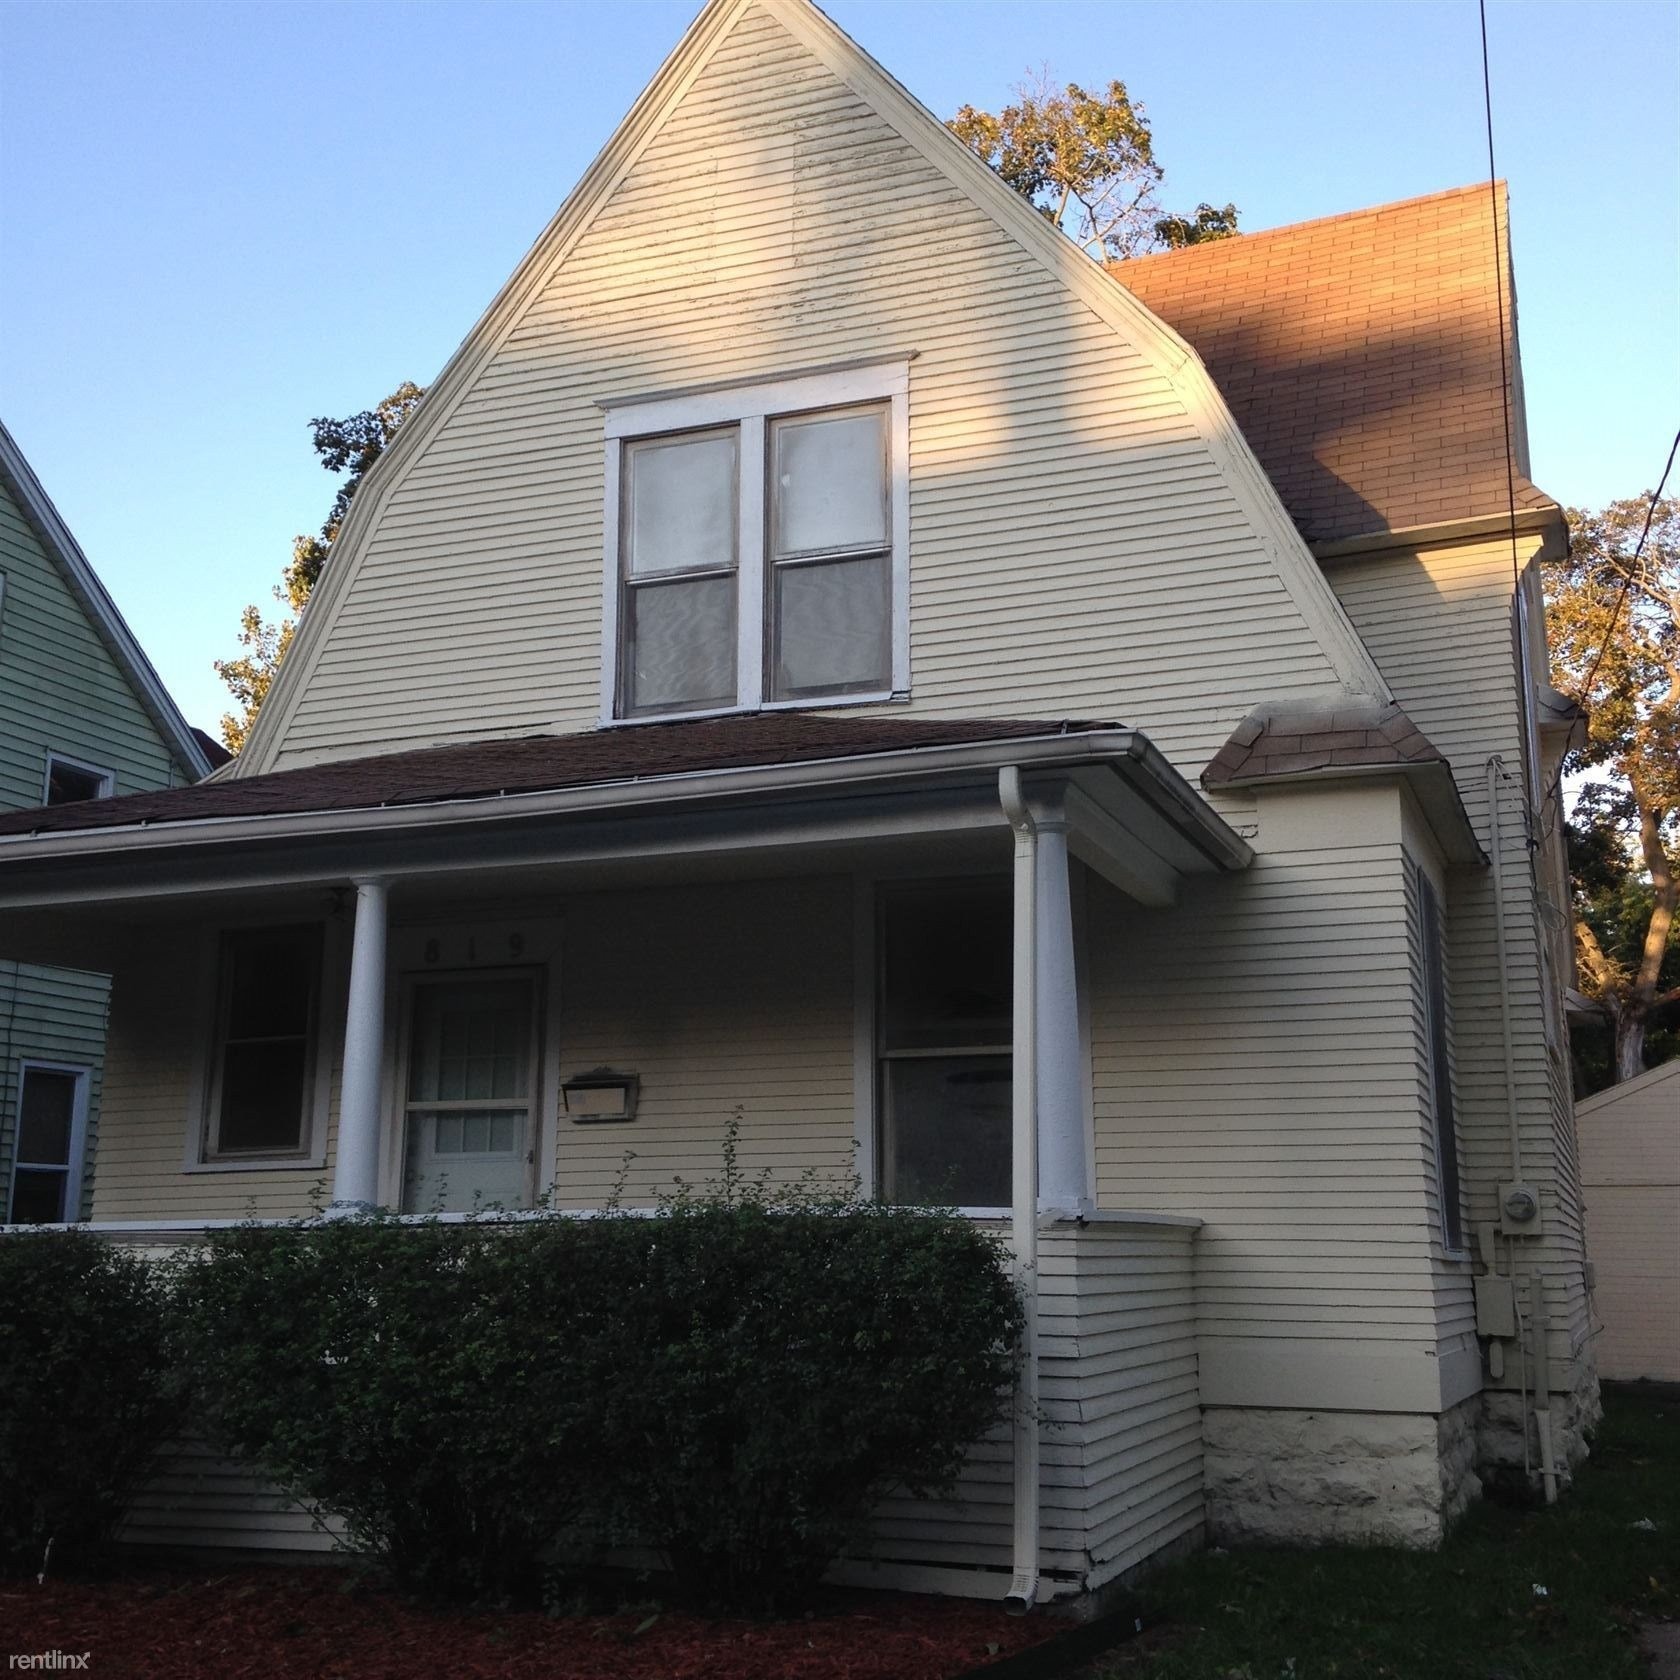 Best 819 Kalamazoo Ave Se Grand Rapids Mi 49507 3 Bedroom With Pictures